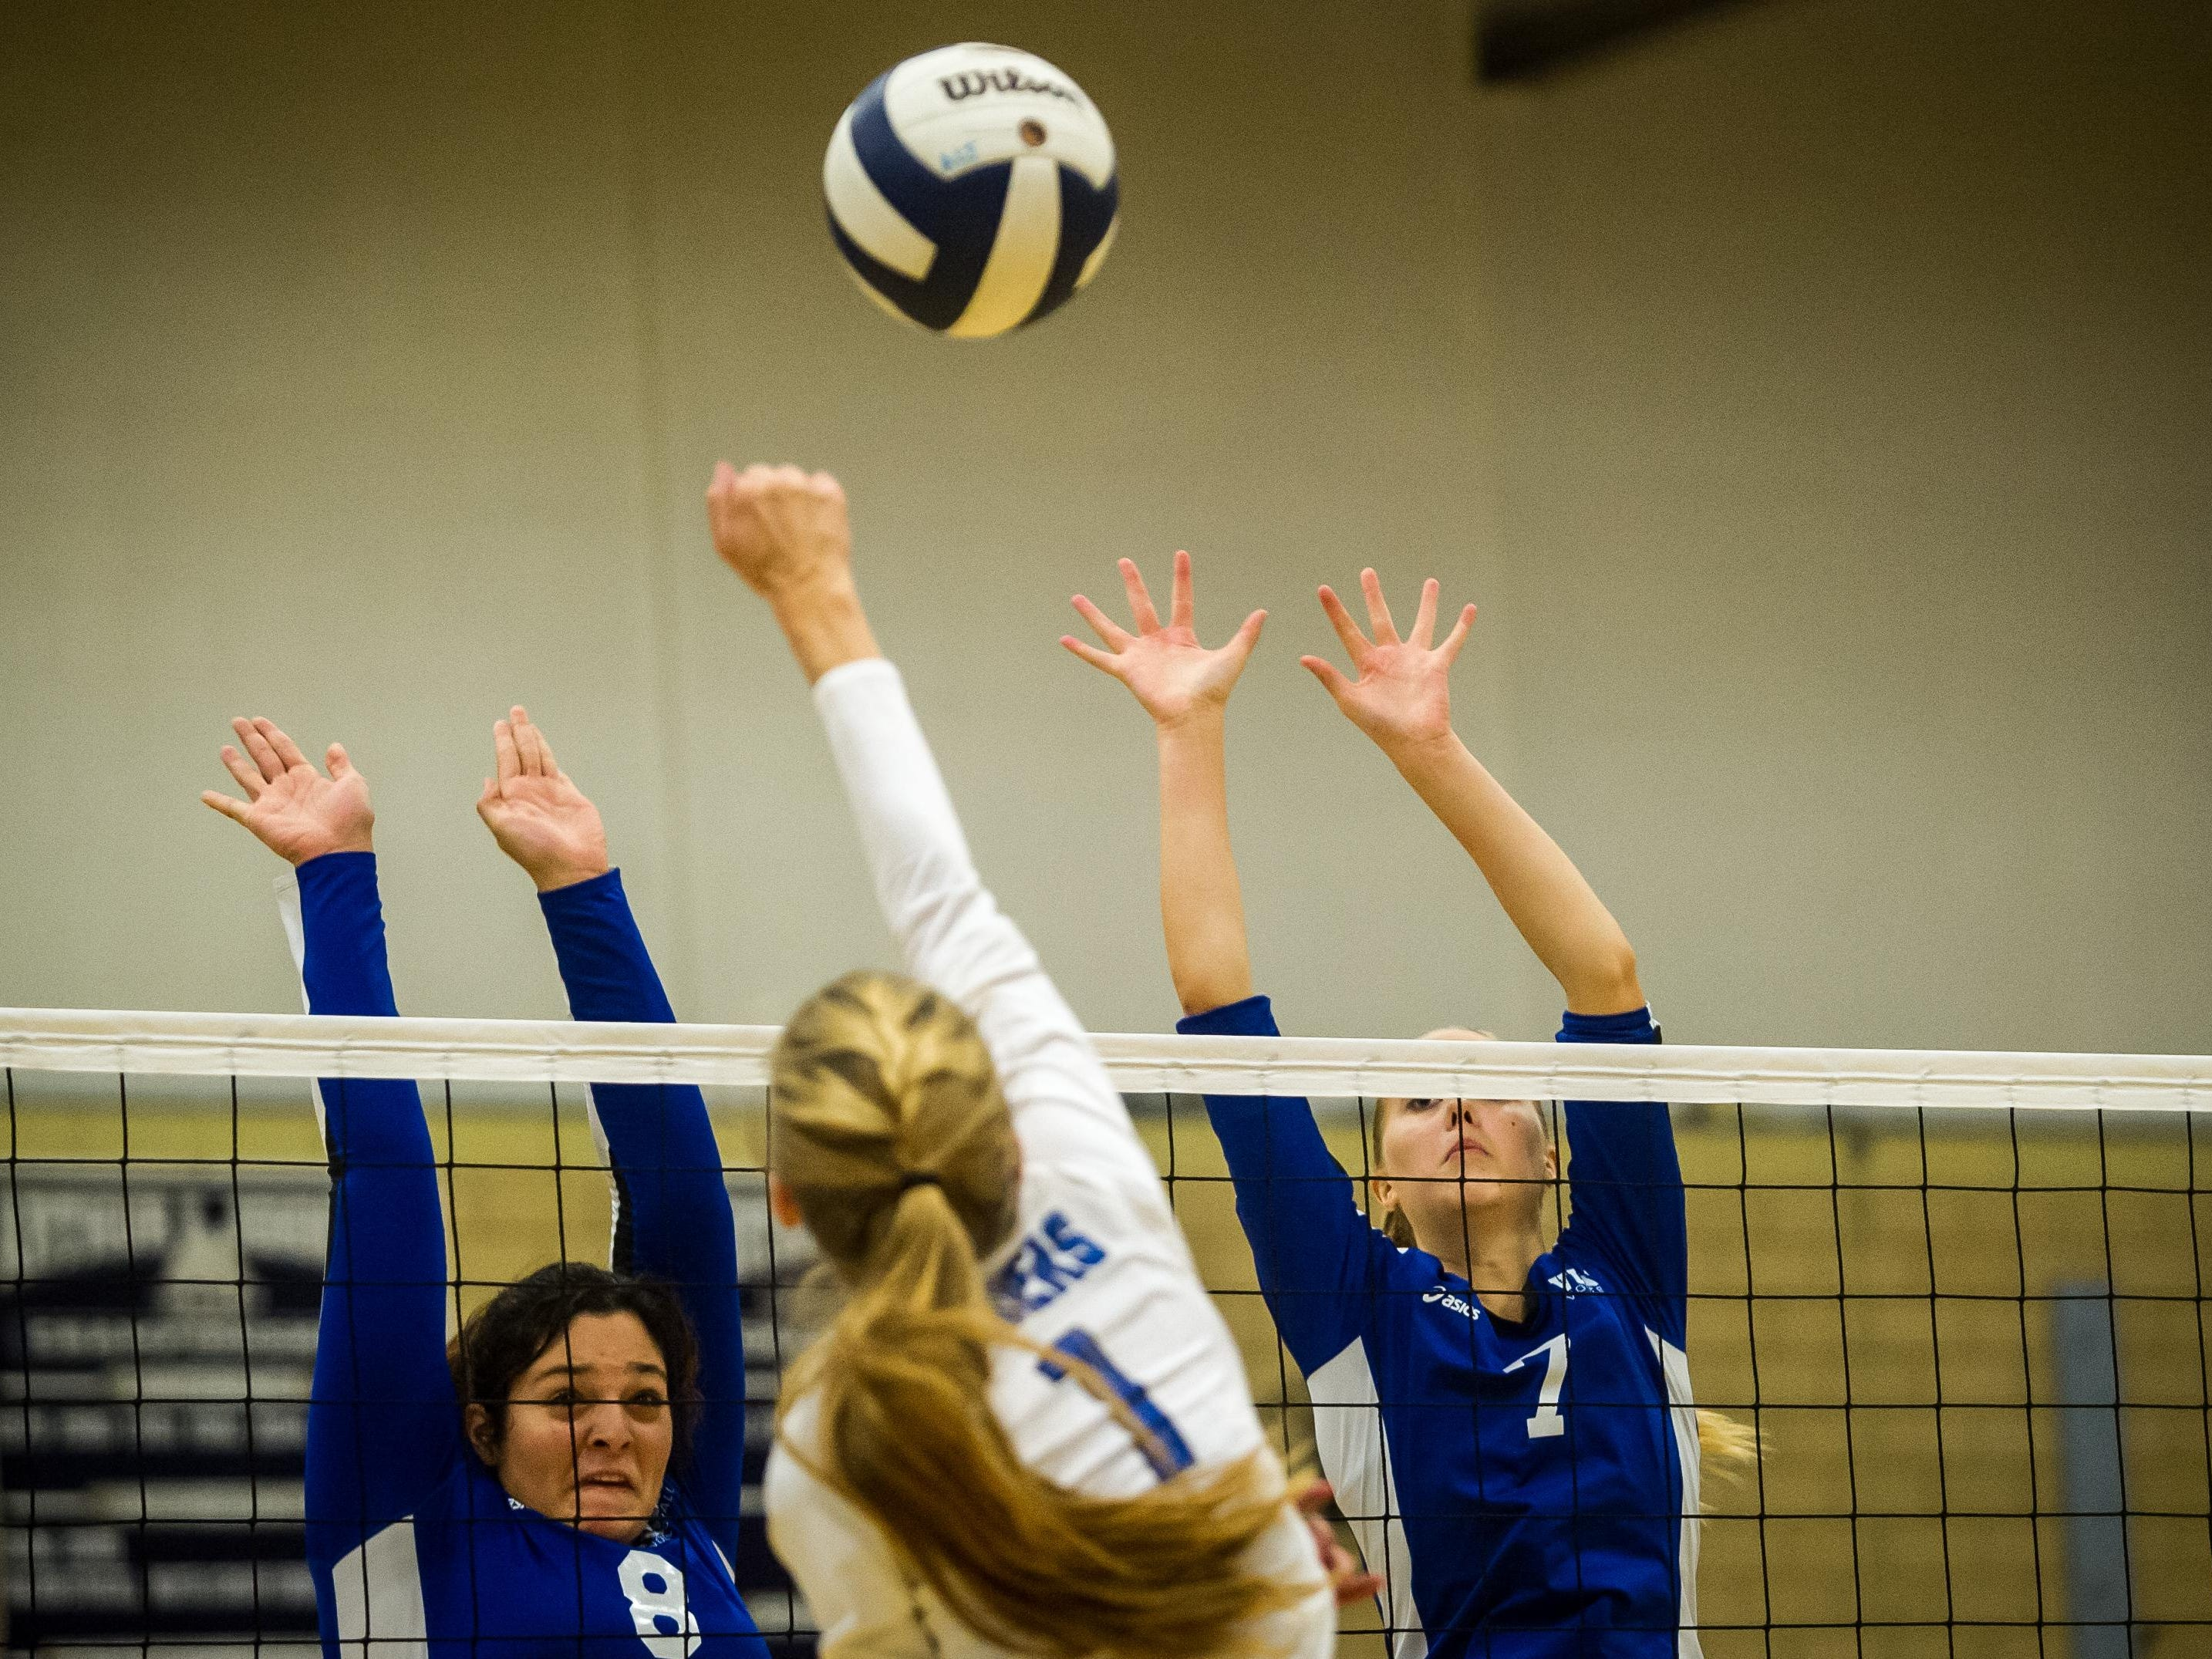 Union Catholic's Anna Bella Giacobbe (left) and Julia Hayes go up to block Scotch Plains-Fanwood's Callen Leahy return in the Union County Tournament semifinals on Wednesday at A.L. Johnson High School.